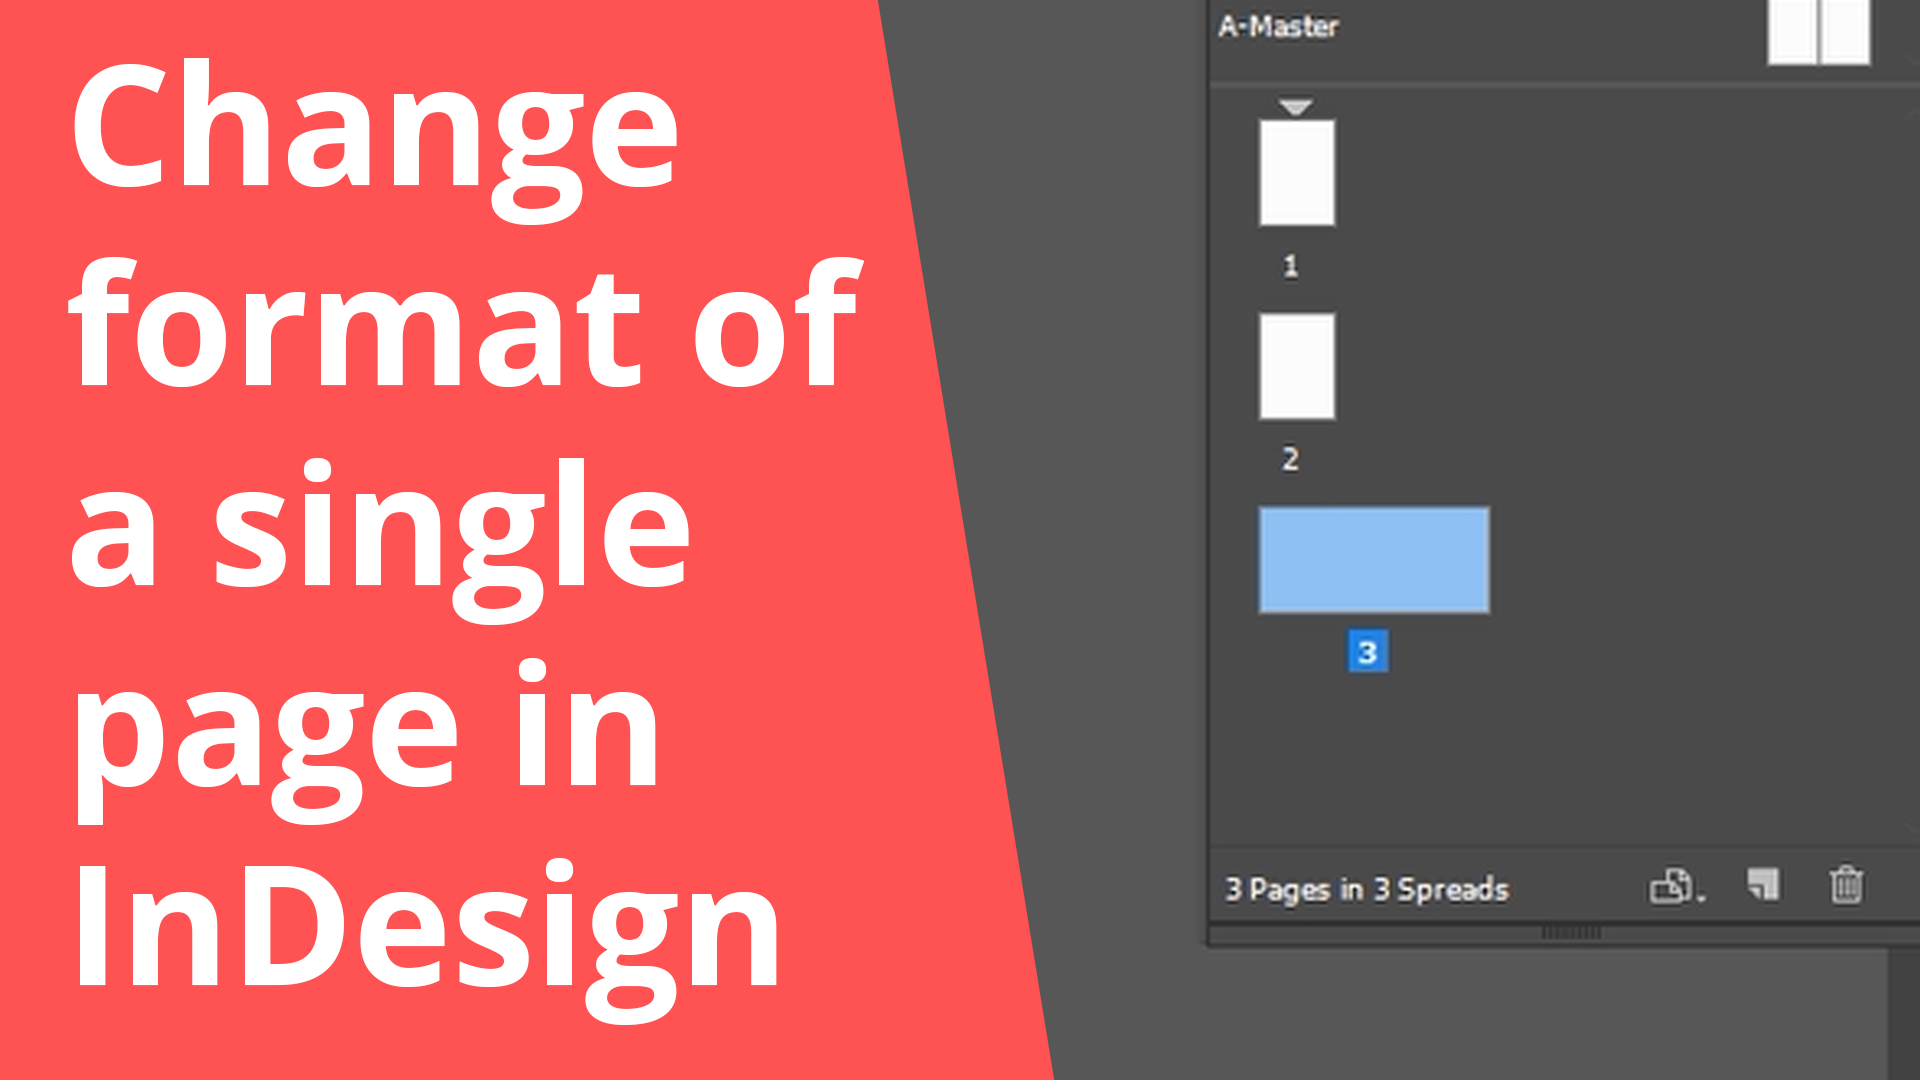 Change the format of a single page in InDesign